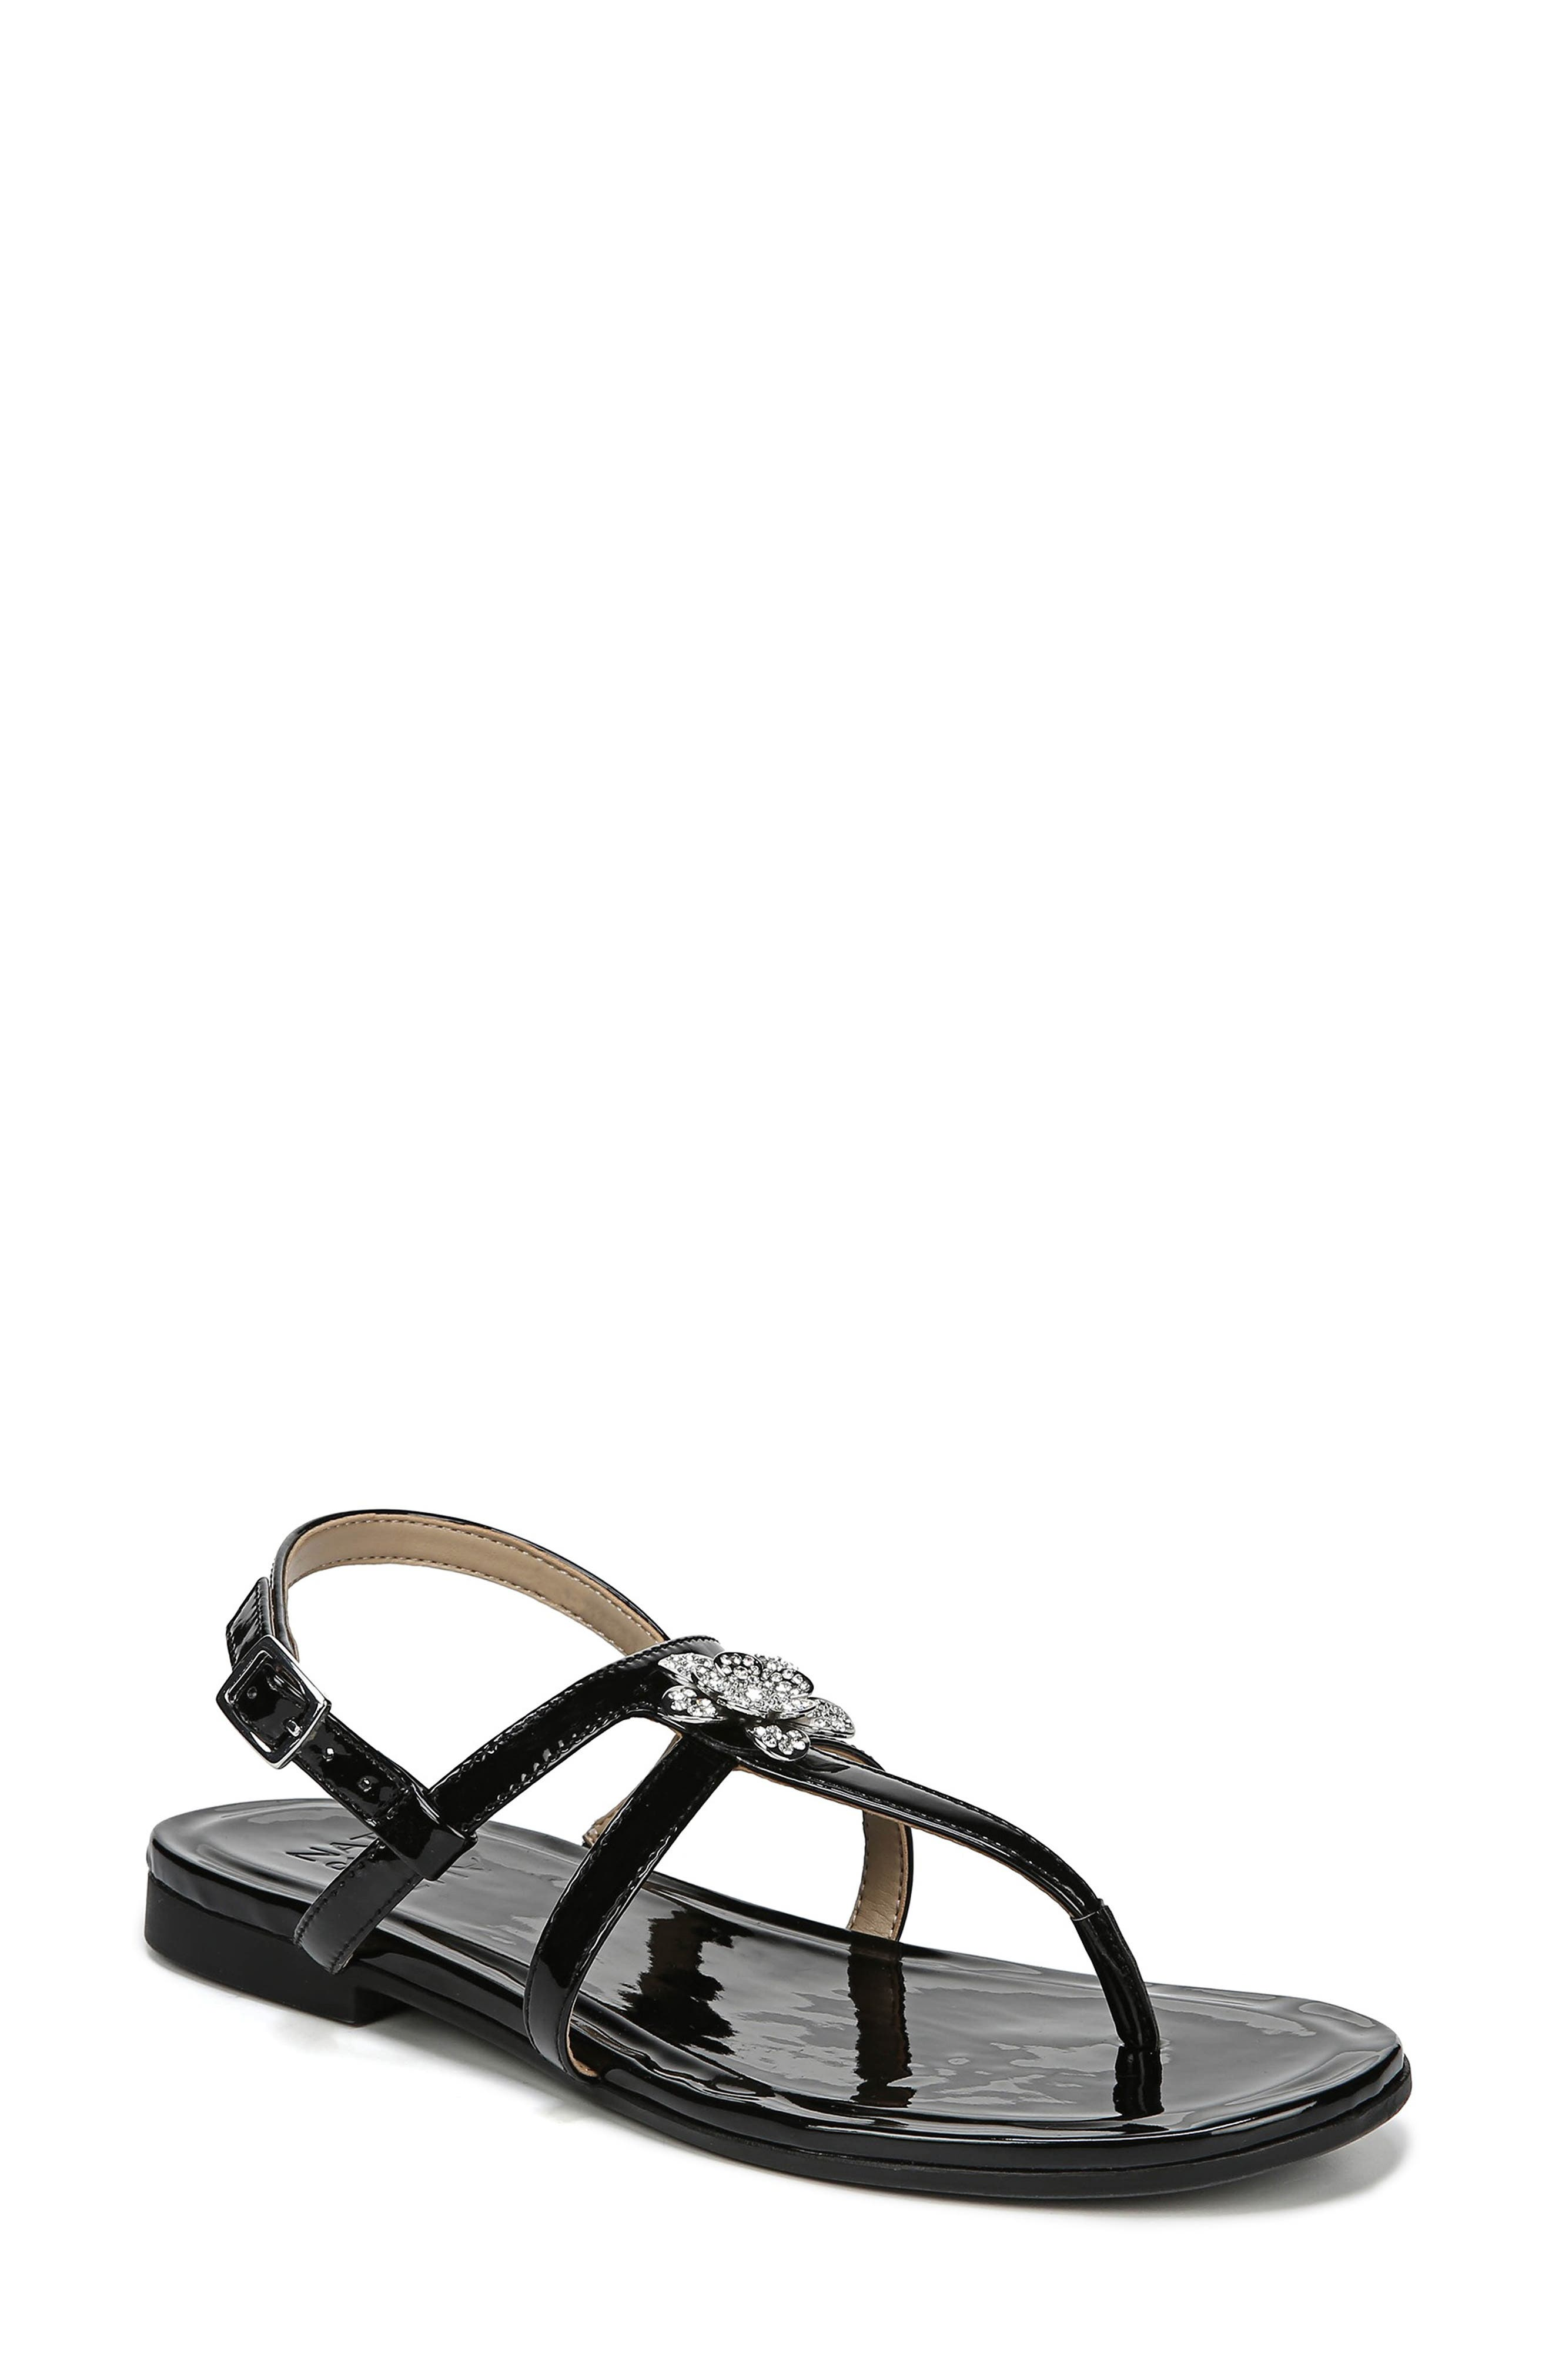 Tilly Embellished Sandal,                             Main thumbnail 1, color,                             BLACK PATENT FAUX LEATHER